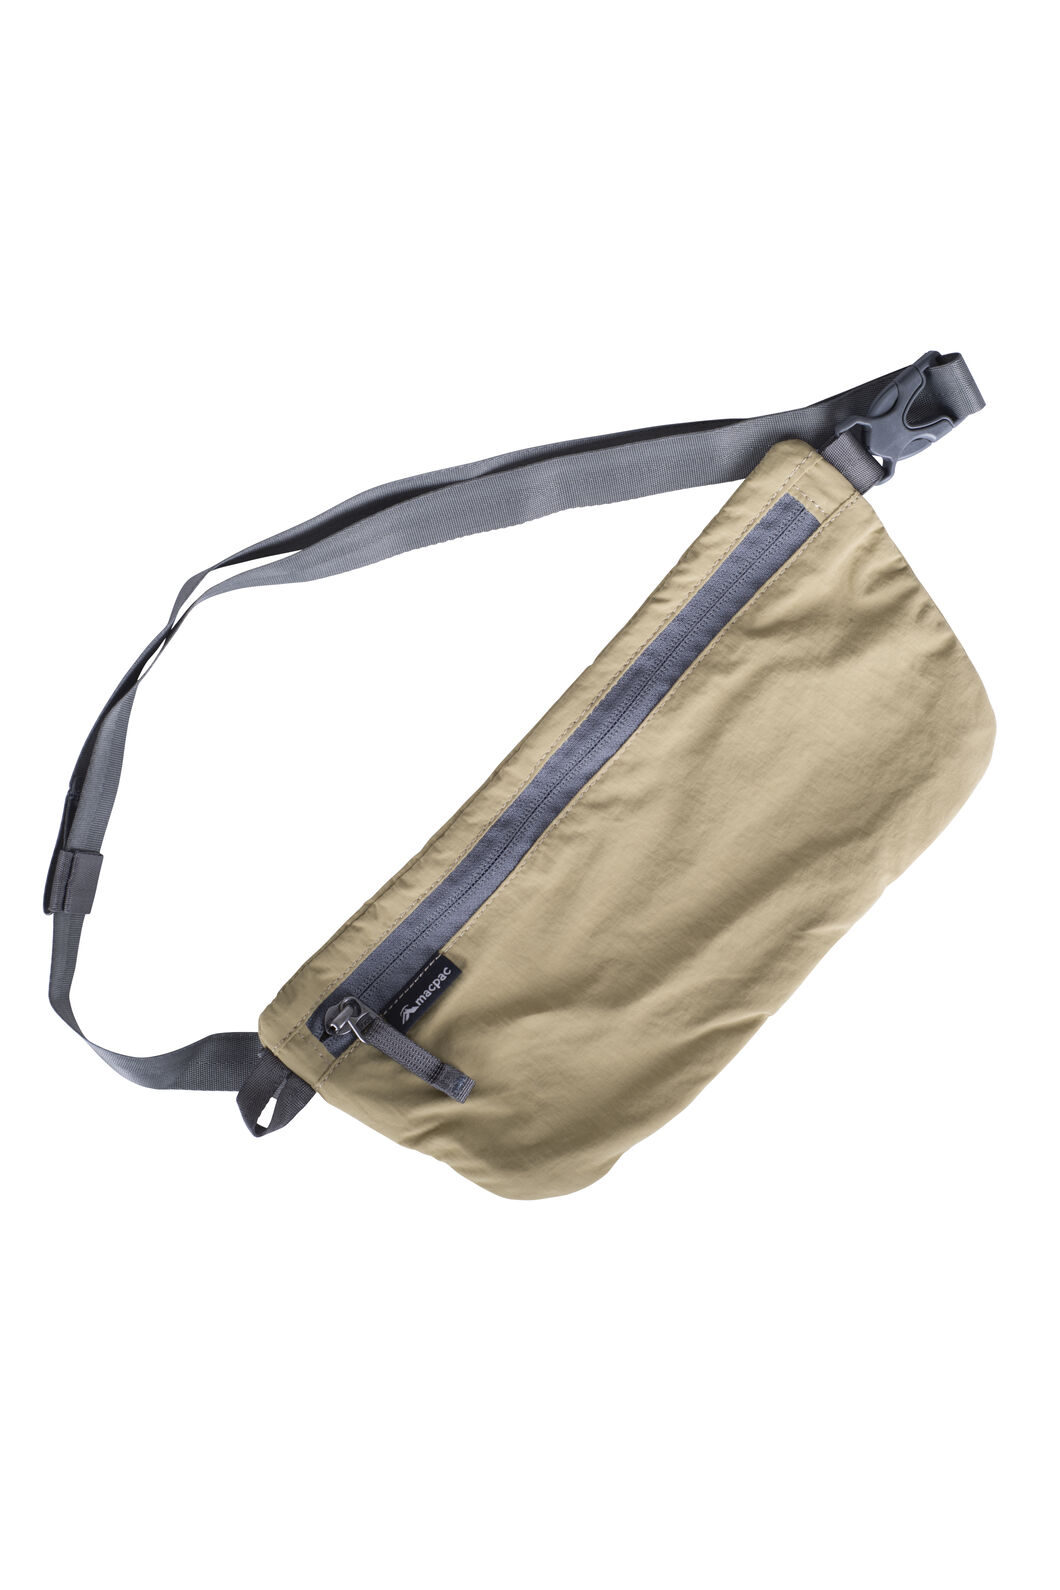 Macpac Lightweight Money Belt, Tan, hi-res